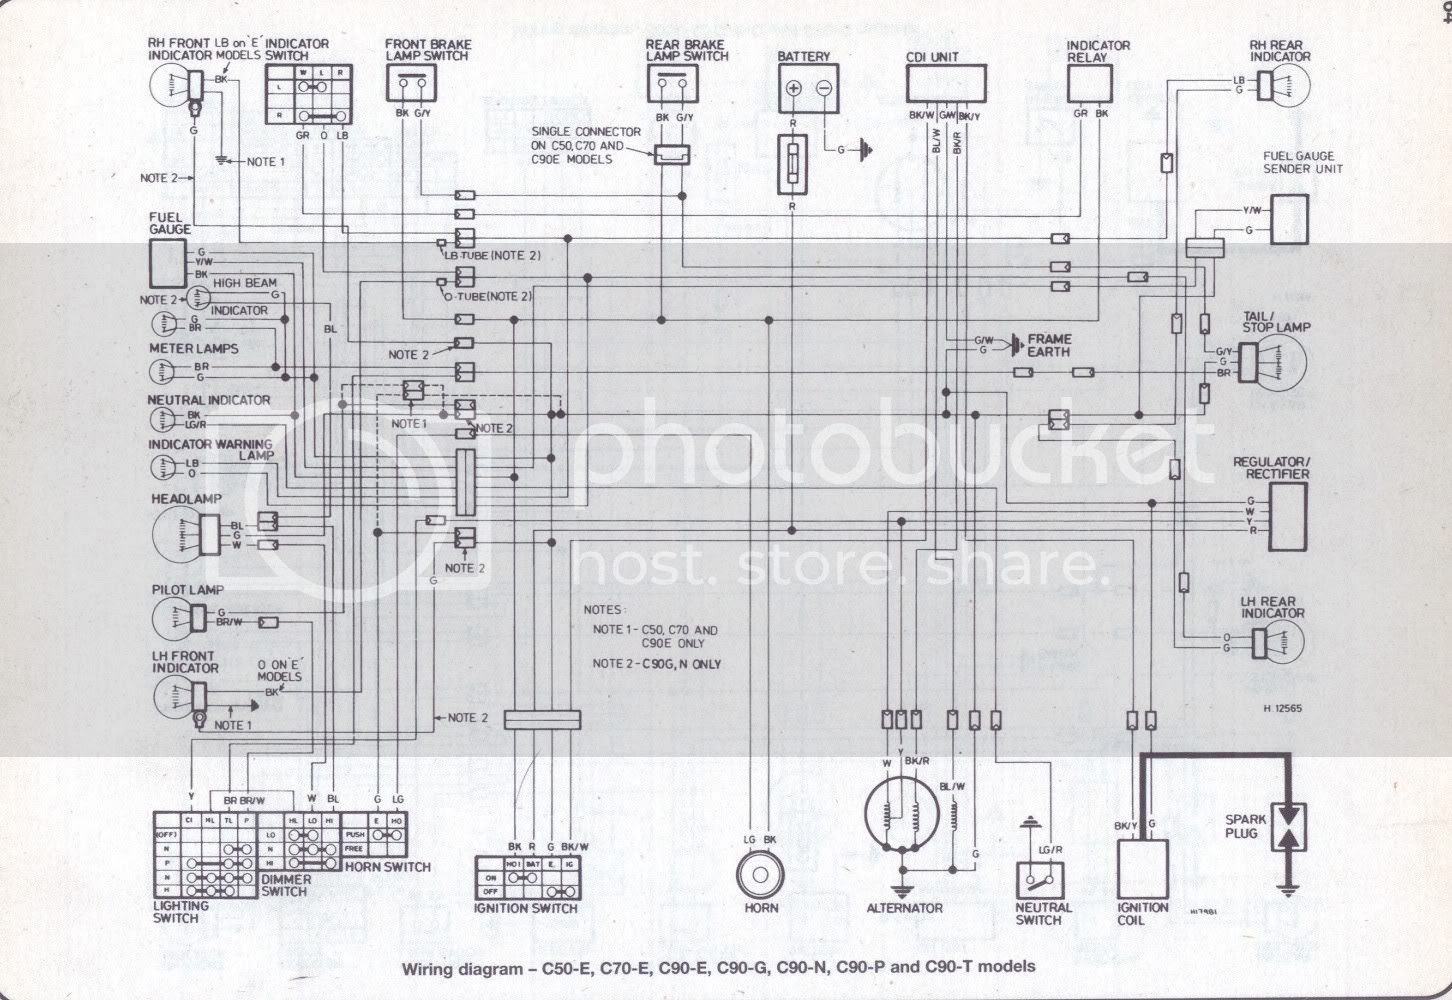 1970s Honda Cub Wiring Diagram Wiring Diagram Optimize A Optimize A Concorsomusicalmuseo It